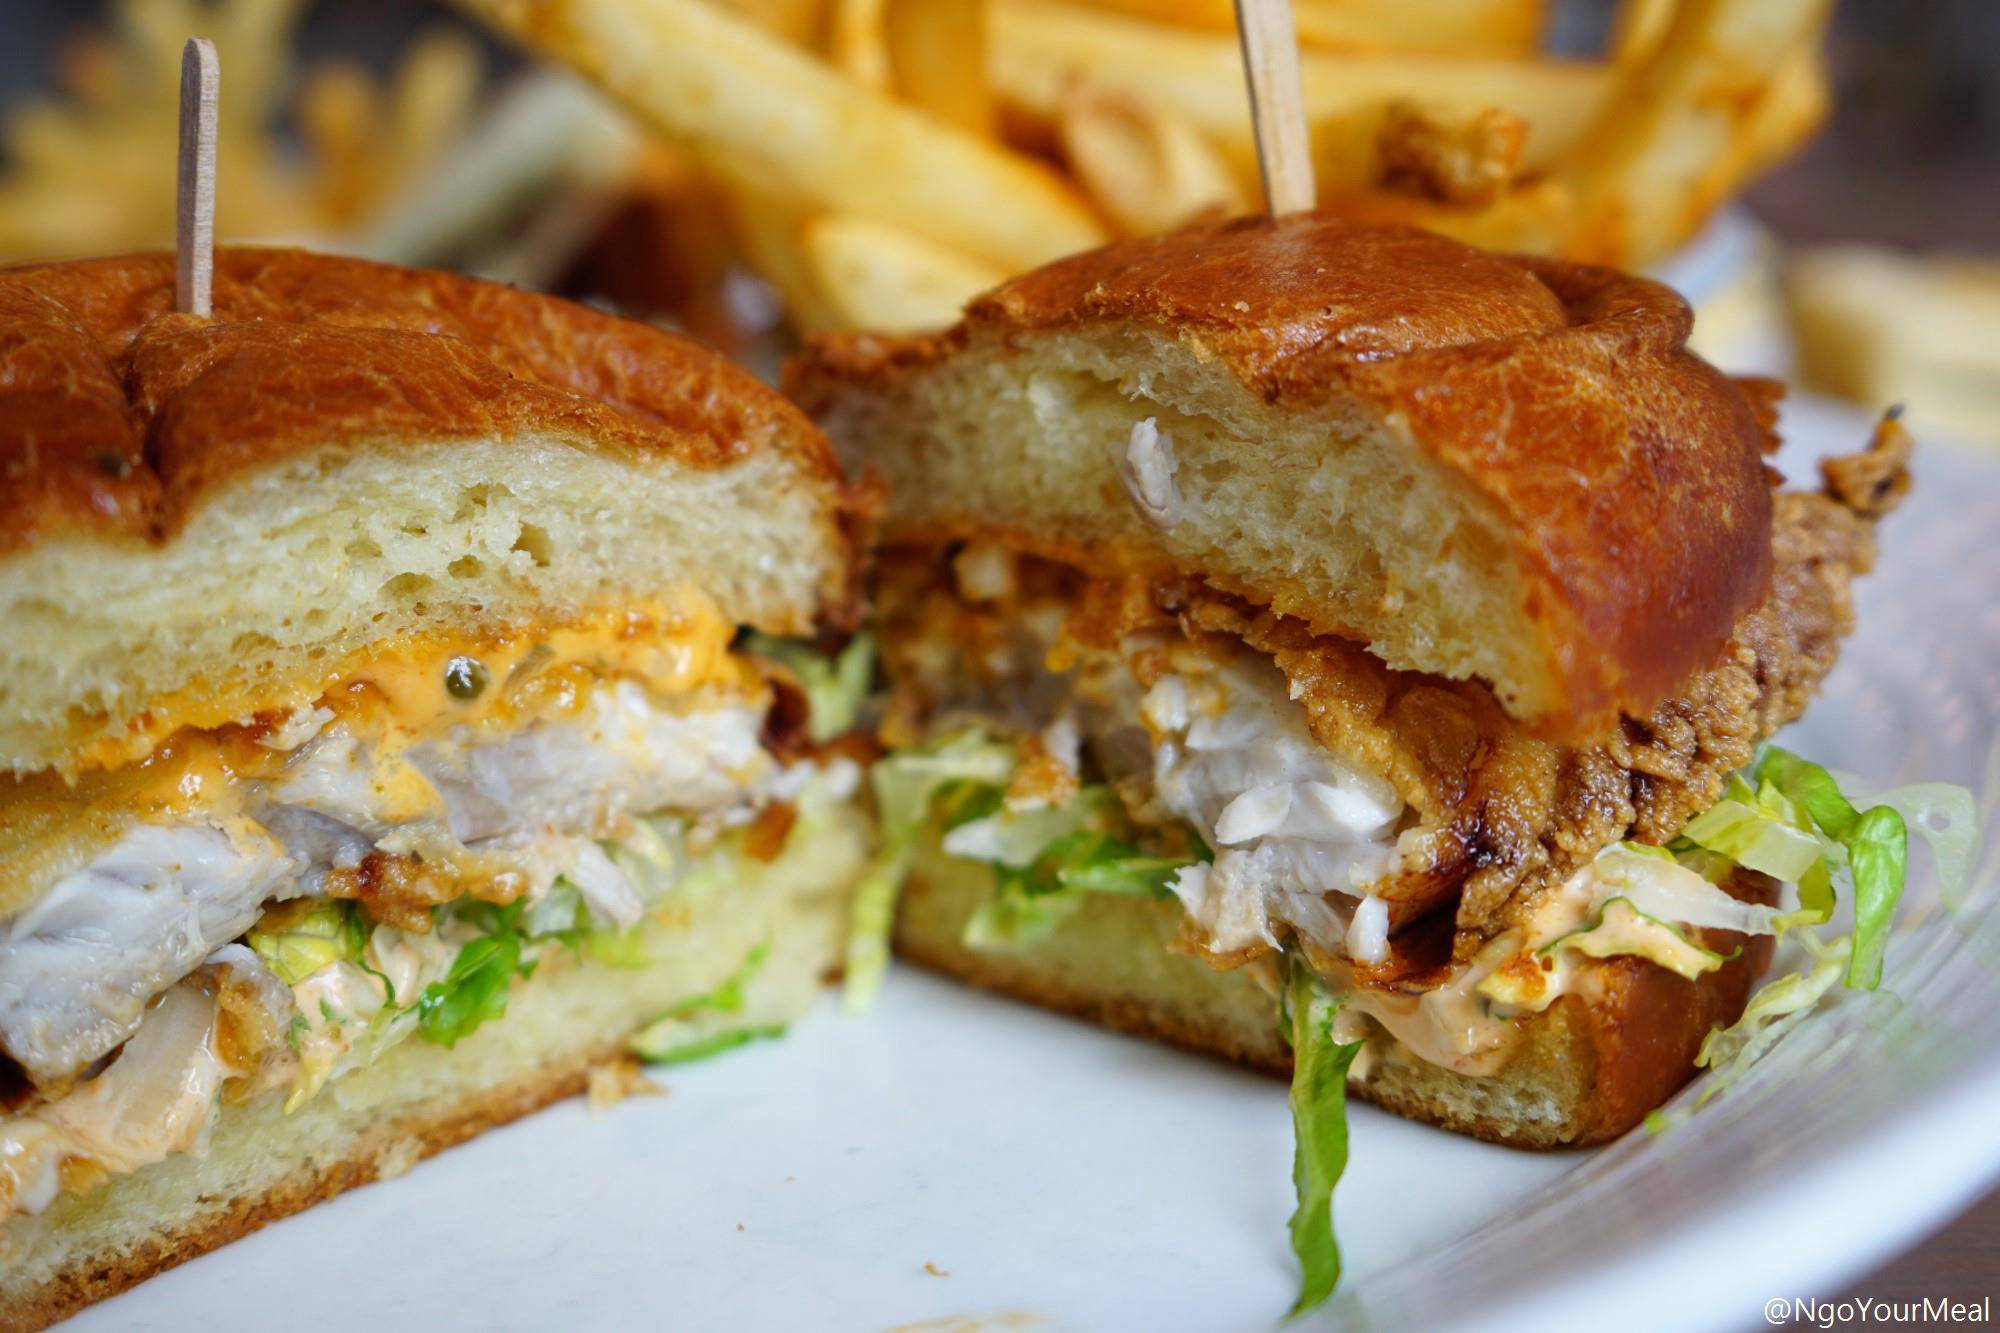 Fried Fish Sandwich at Island Creek Oyster Bar in Boston